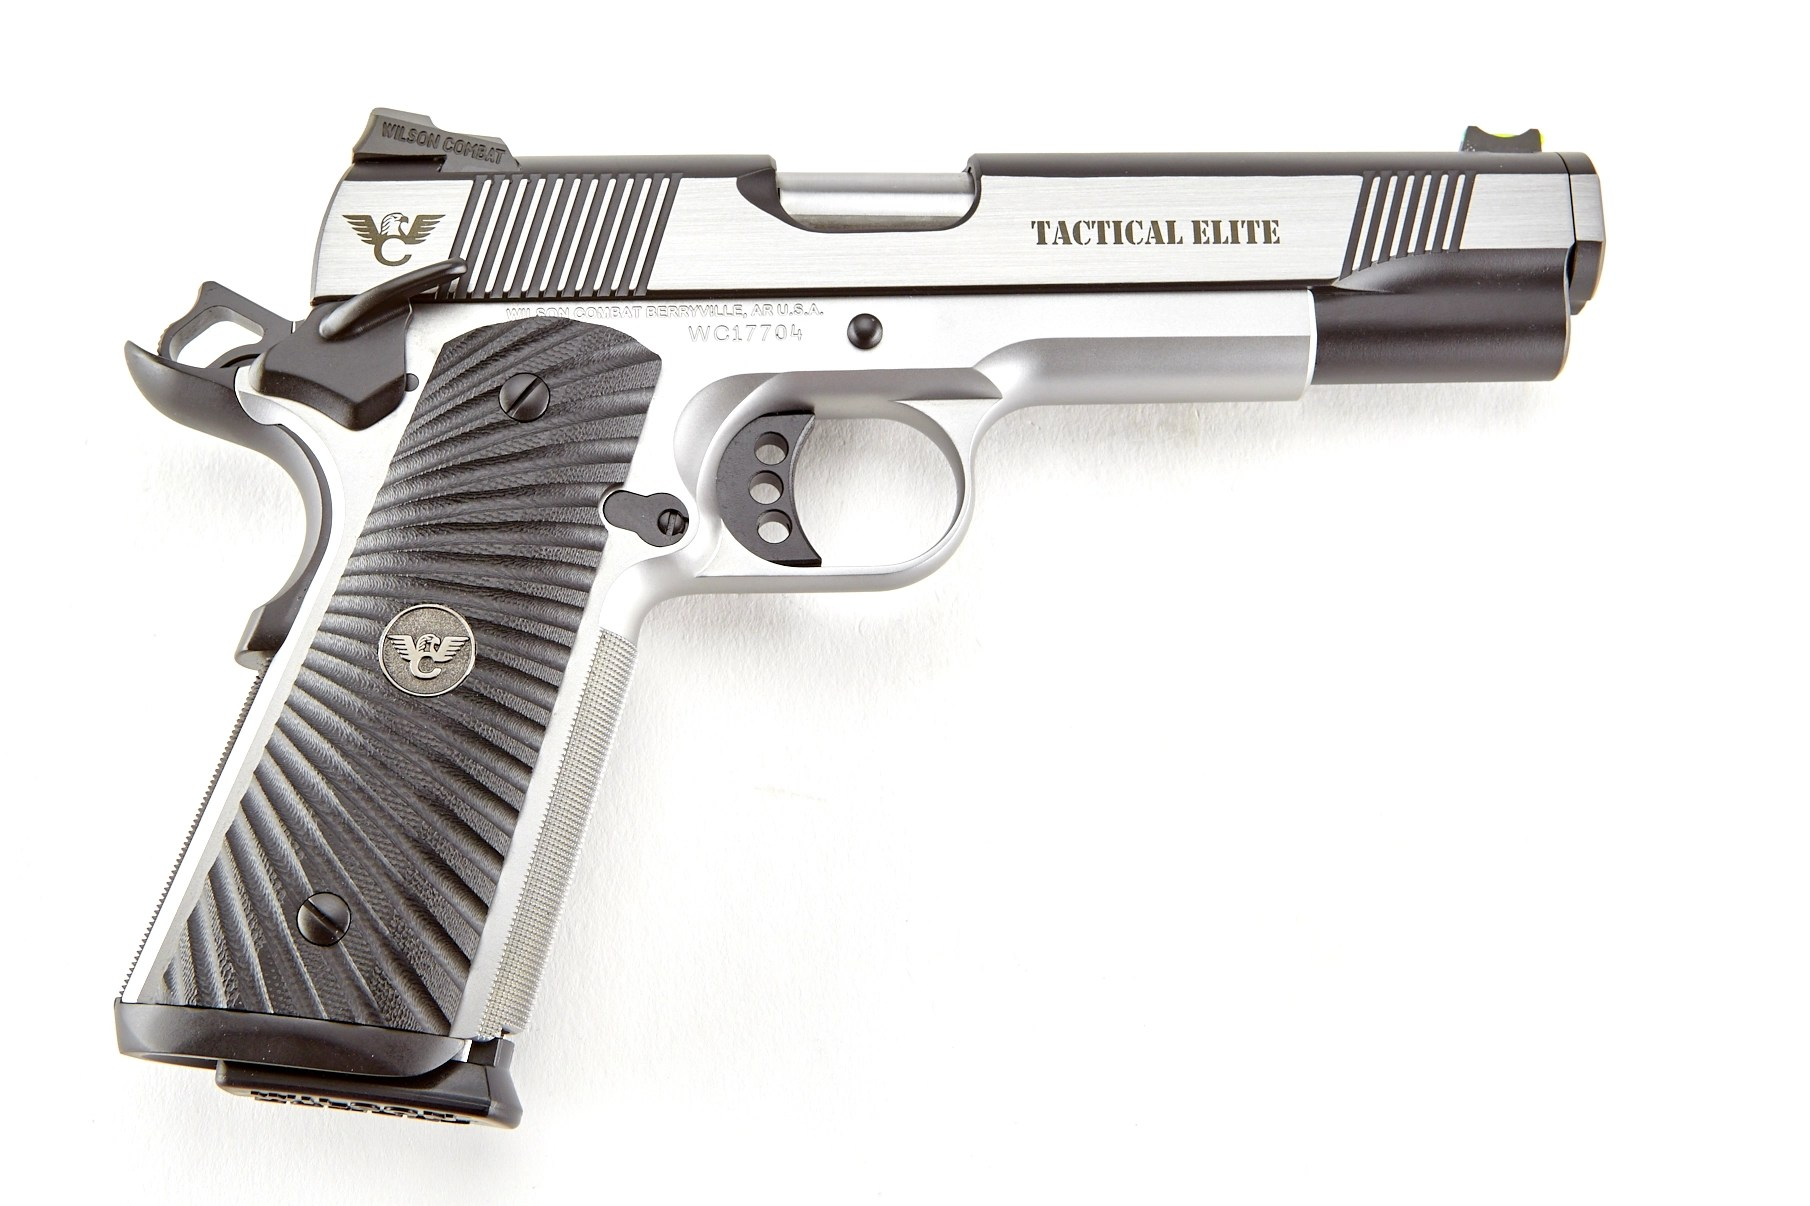 Tactical Elite, Full-Size, 9mm, Stainless Steel Upgrade